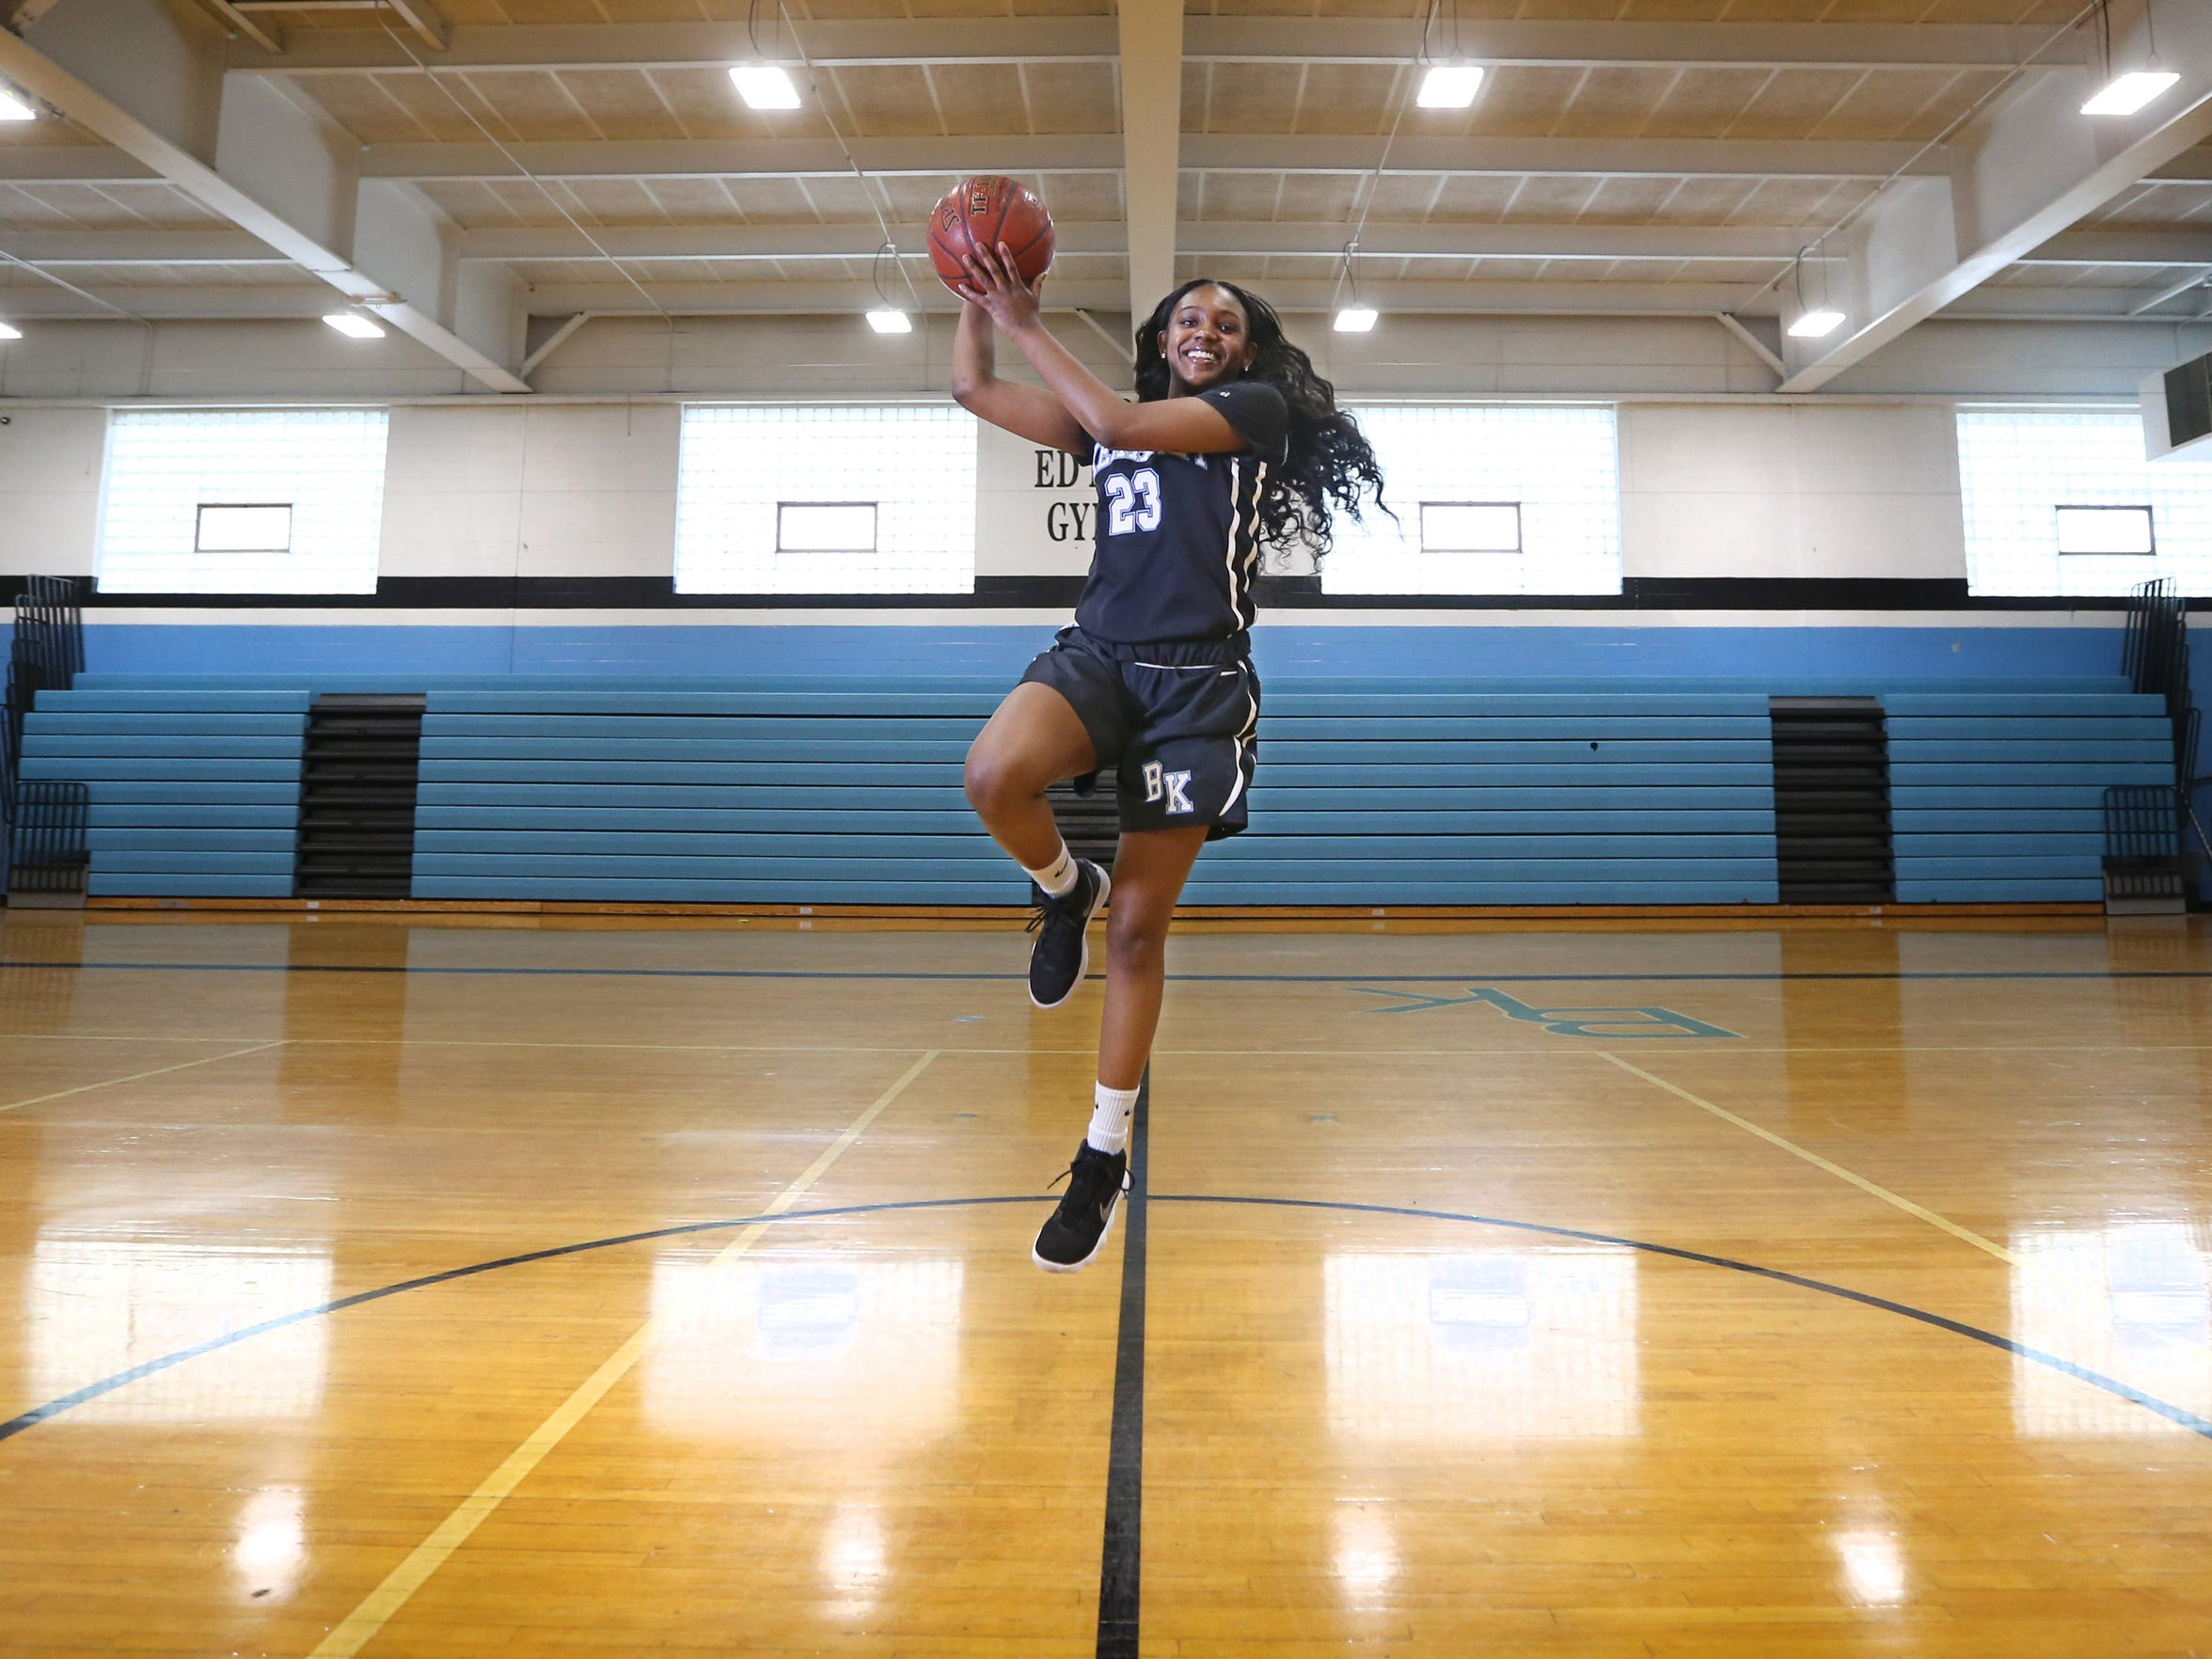 Allure Simmons of Bishop Kearney is the AGR Girls Basketball